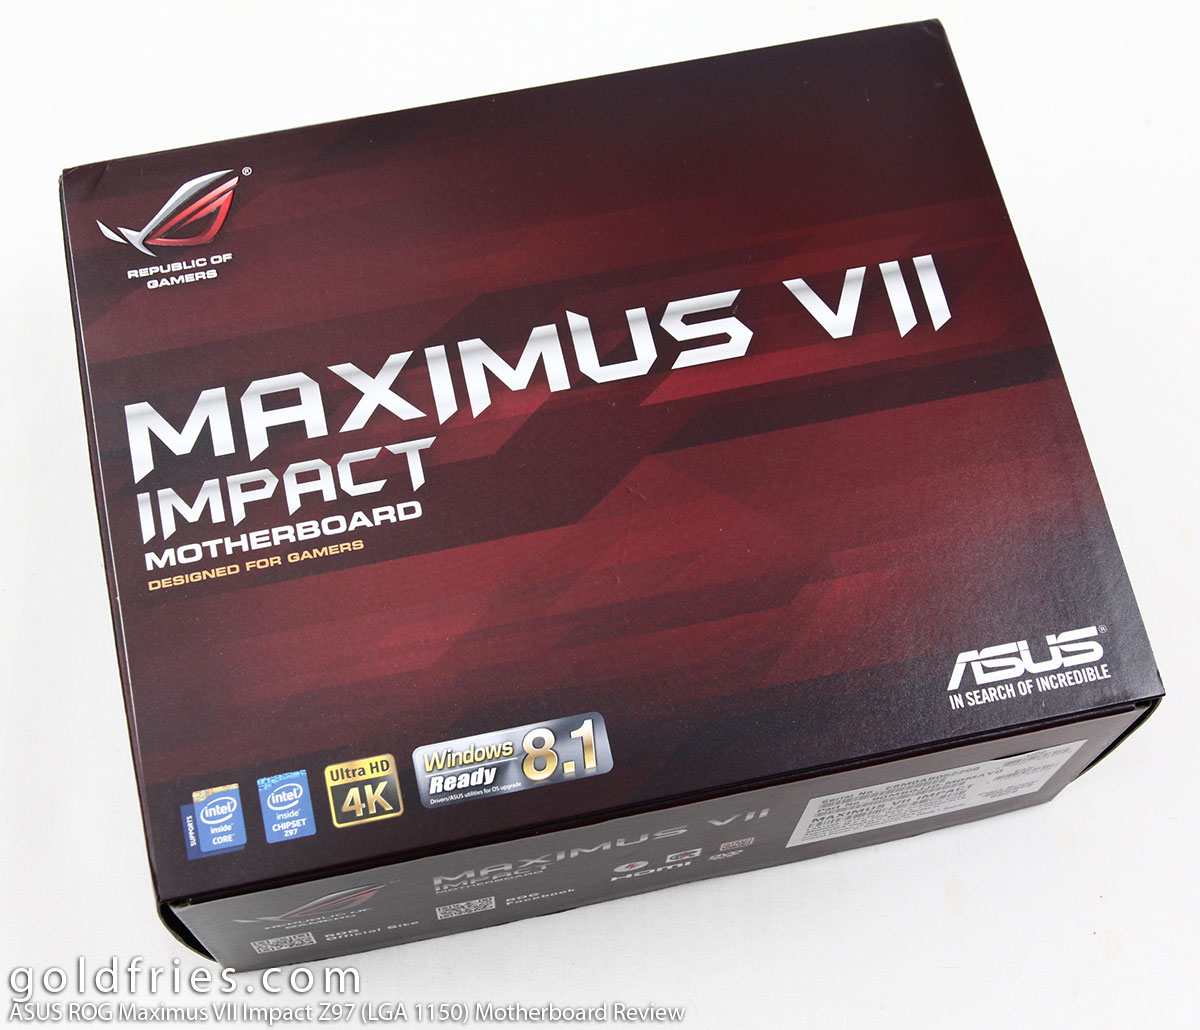 ASUS ROG Maximus VII Impact Z97 (LGA 1150) Mini-ITX Motherboard Review